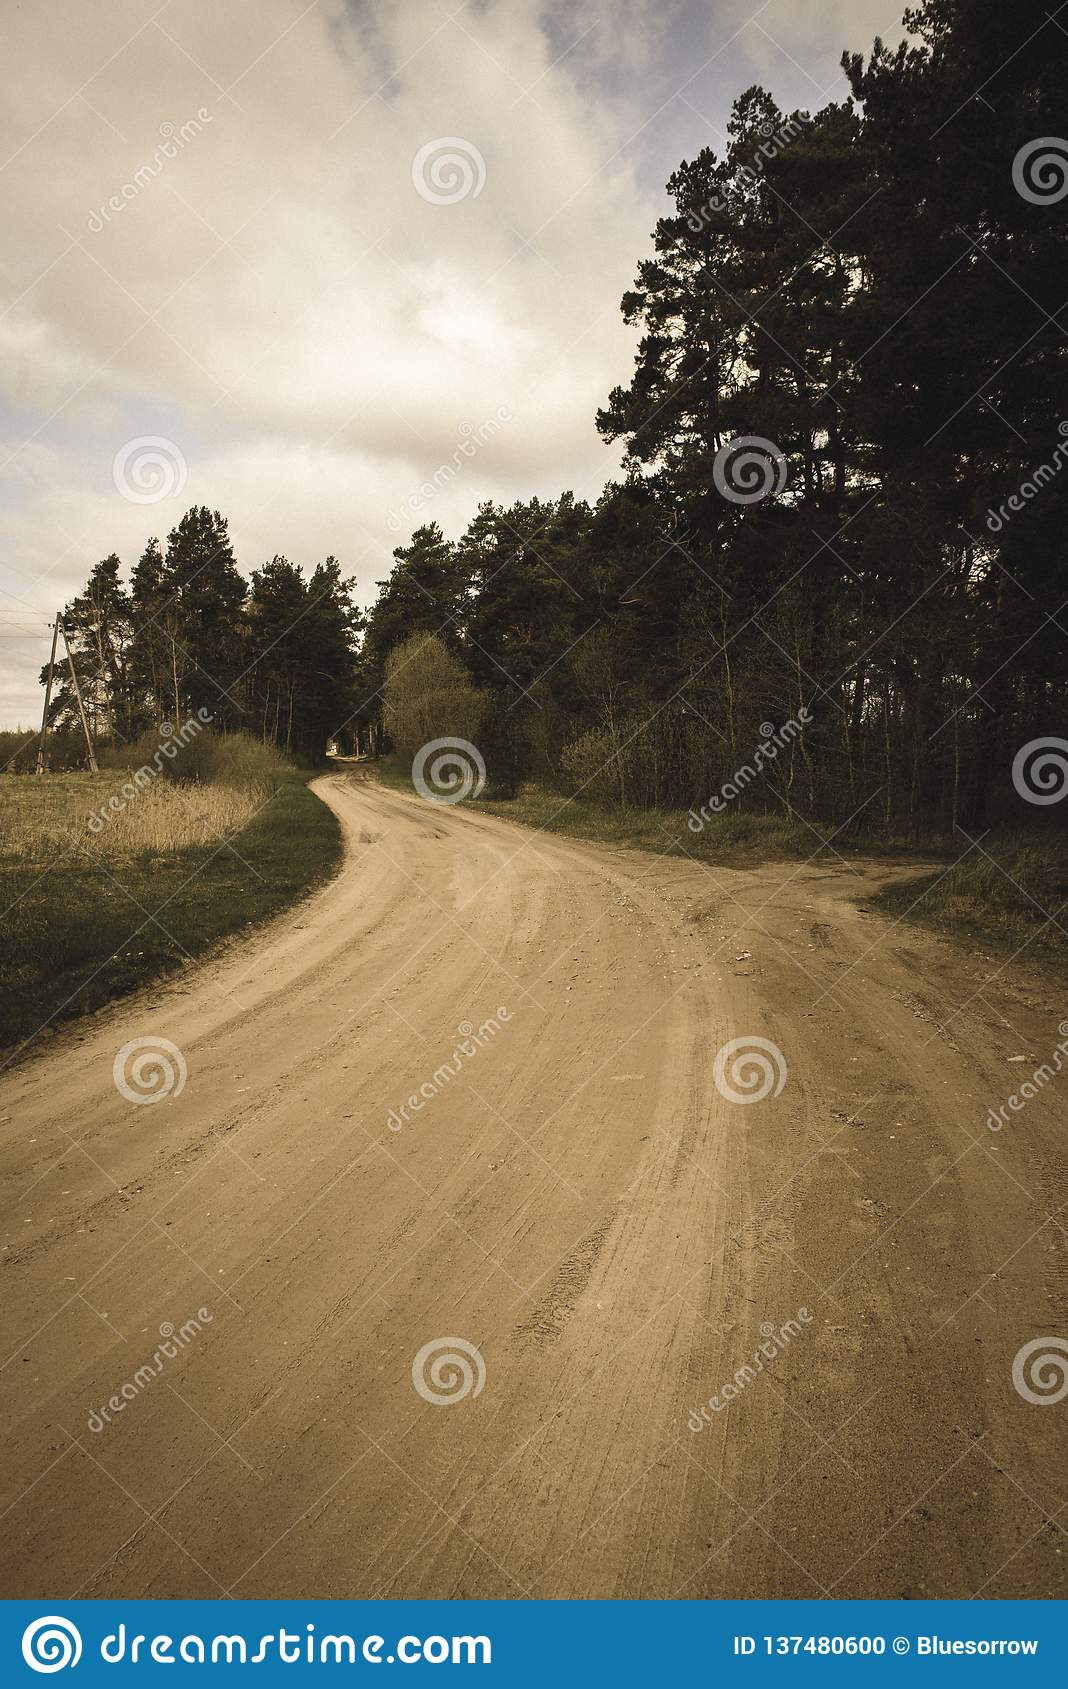 Country gravel road with old and broken asphalt - vintage retro look. Country gravel road in perspective with old and broken asphalt in spring season with poor stock photo